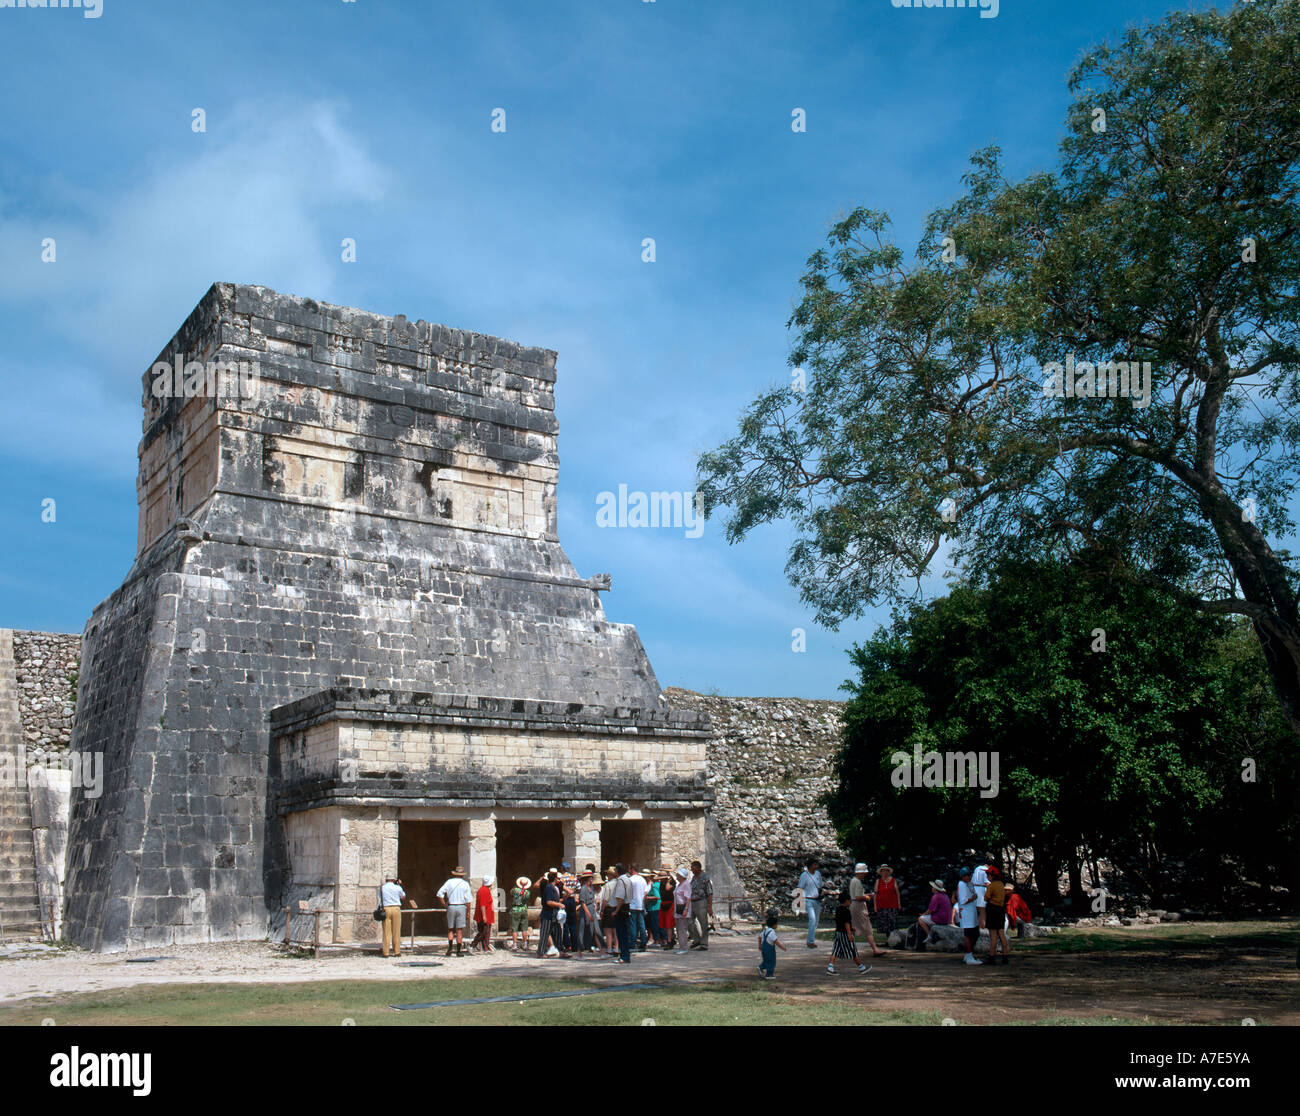 Temple of the Jaguars and Annexe, Mayan Ruins, Chichen Itza, Yucatan Peninsula, Mexico - Stock Image